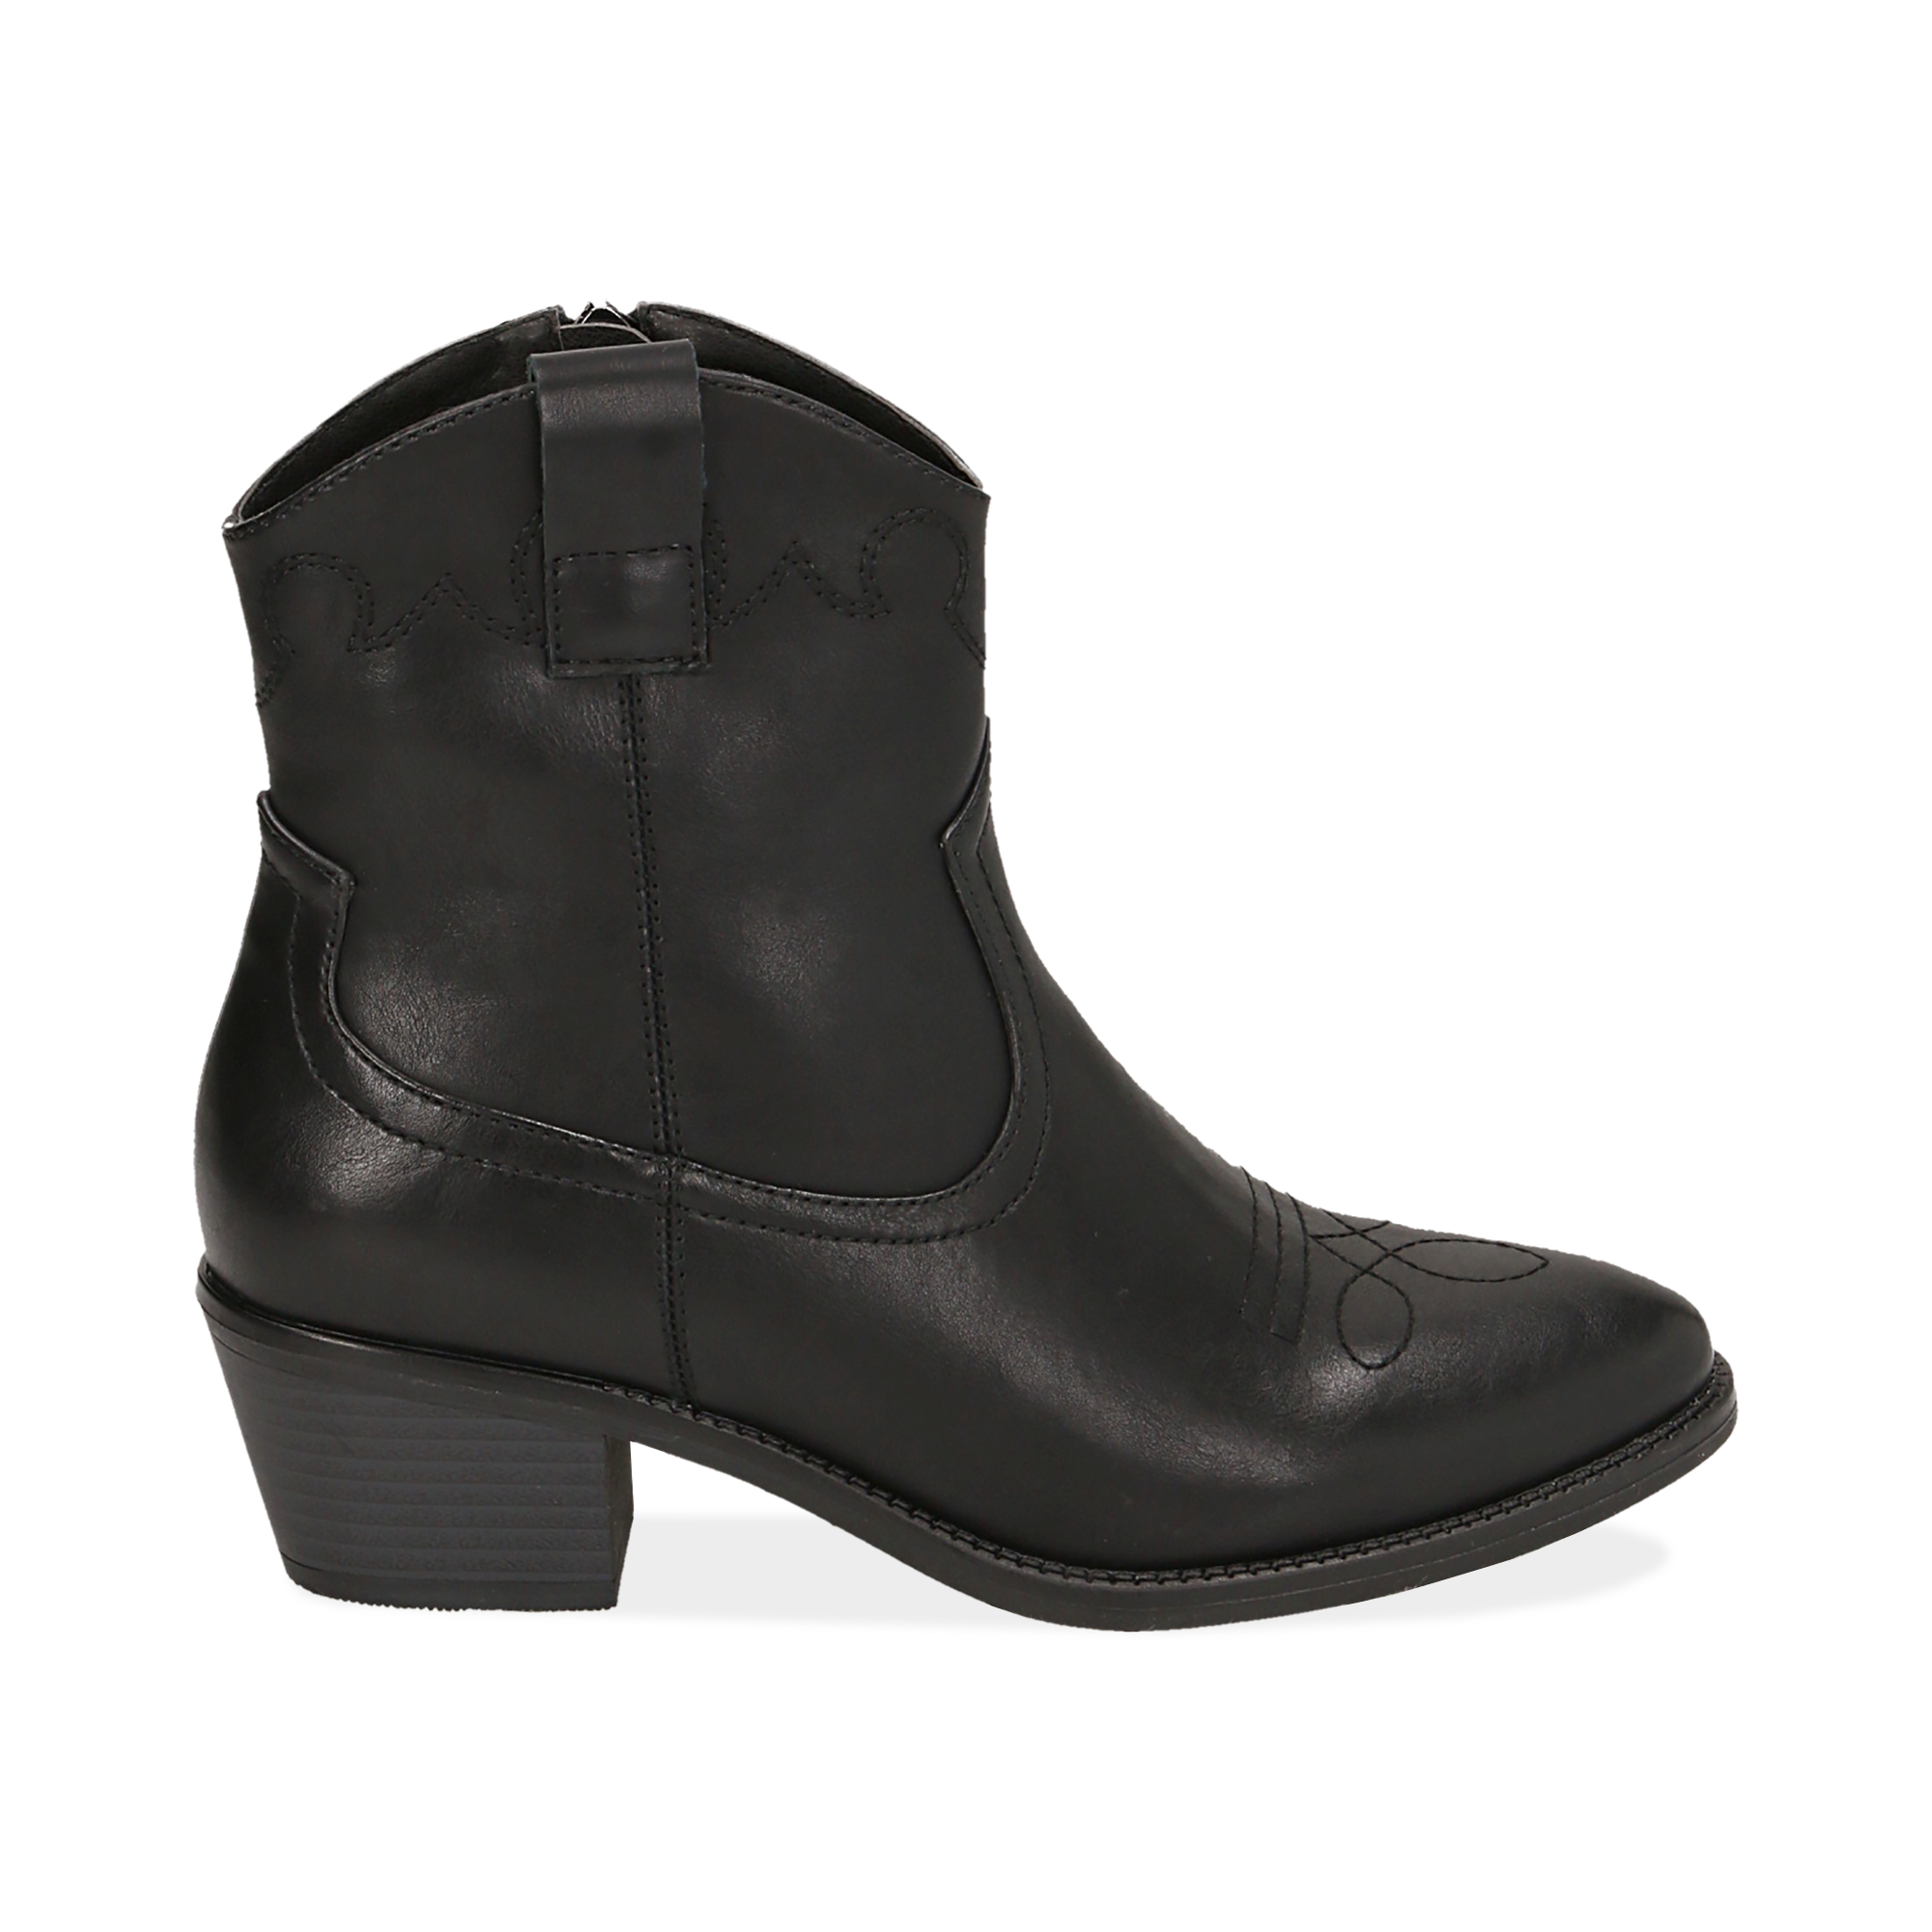 Ankle boots neri, tacco 4,50 cm